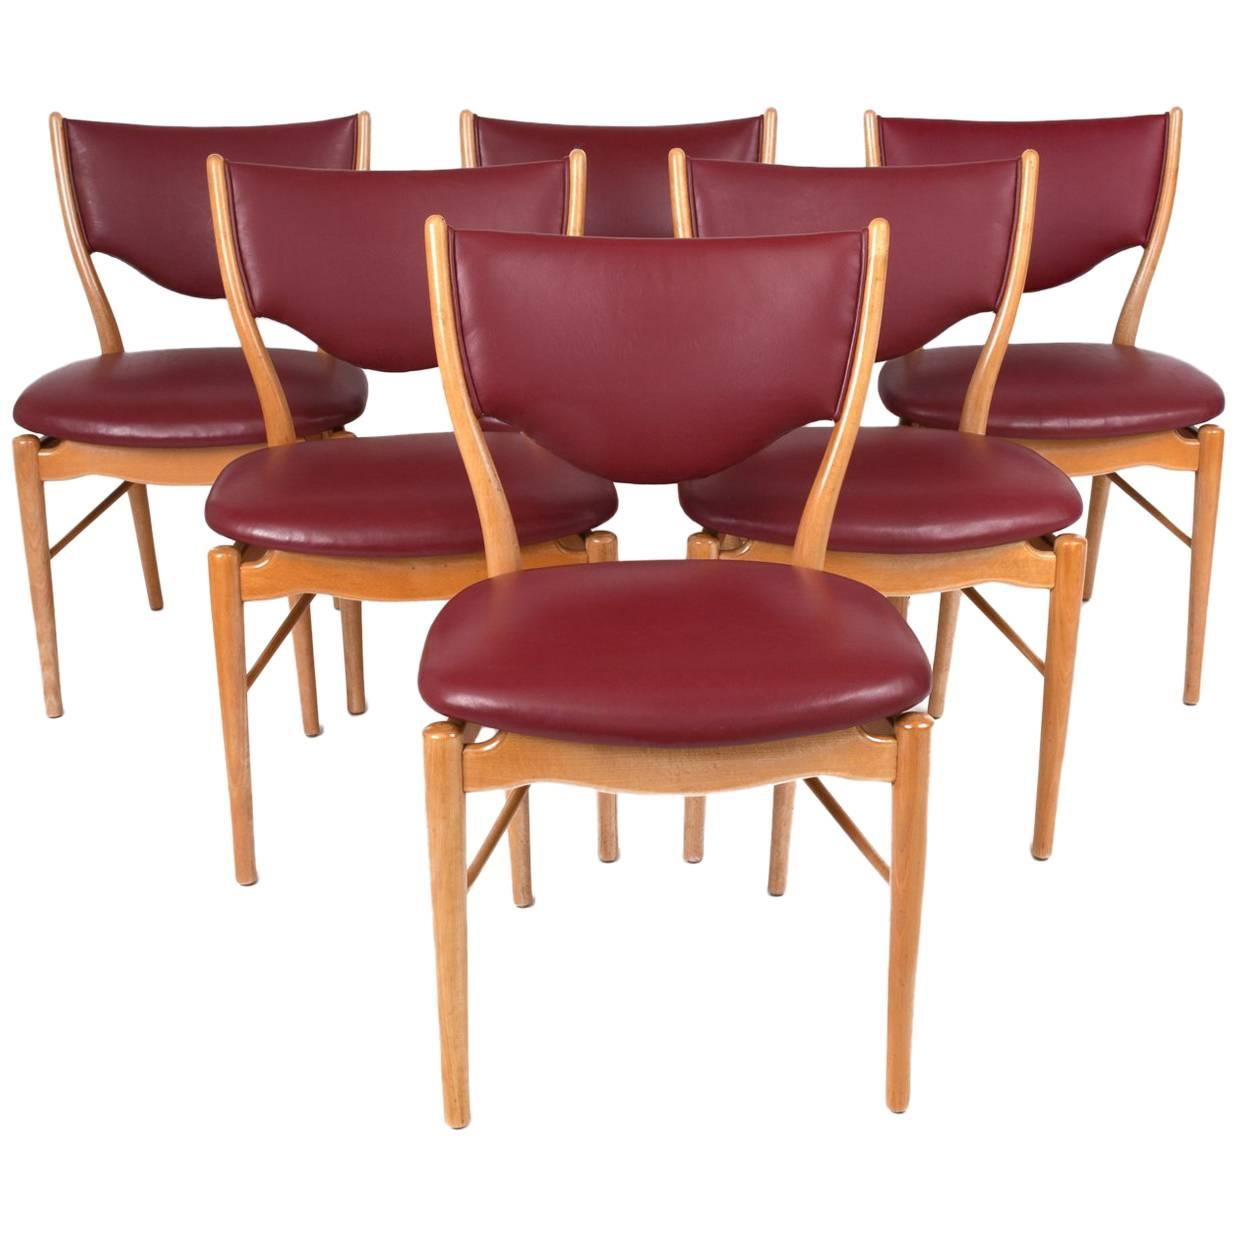 Finn Juhl Sinuous Set Of Six Red Dining Chairs In Beech U0026 Leather, Denmark  1950s